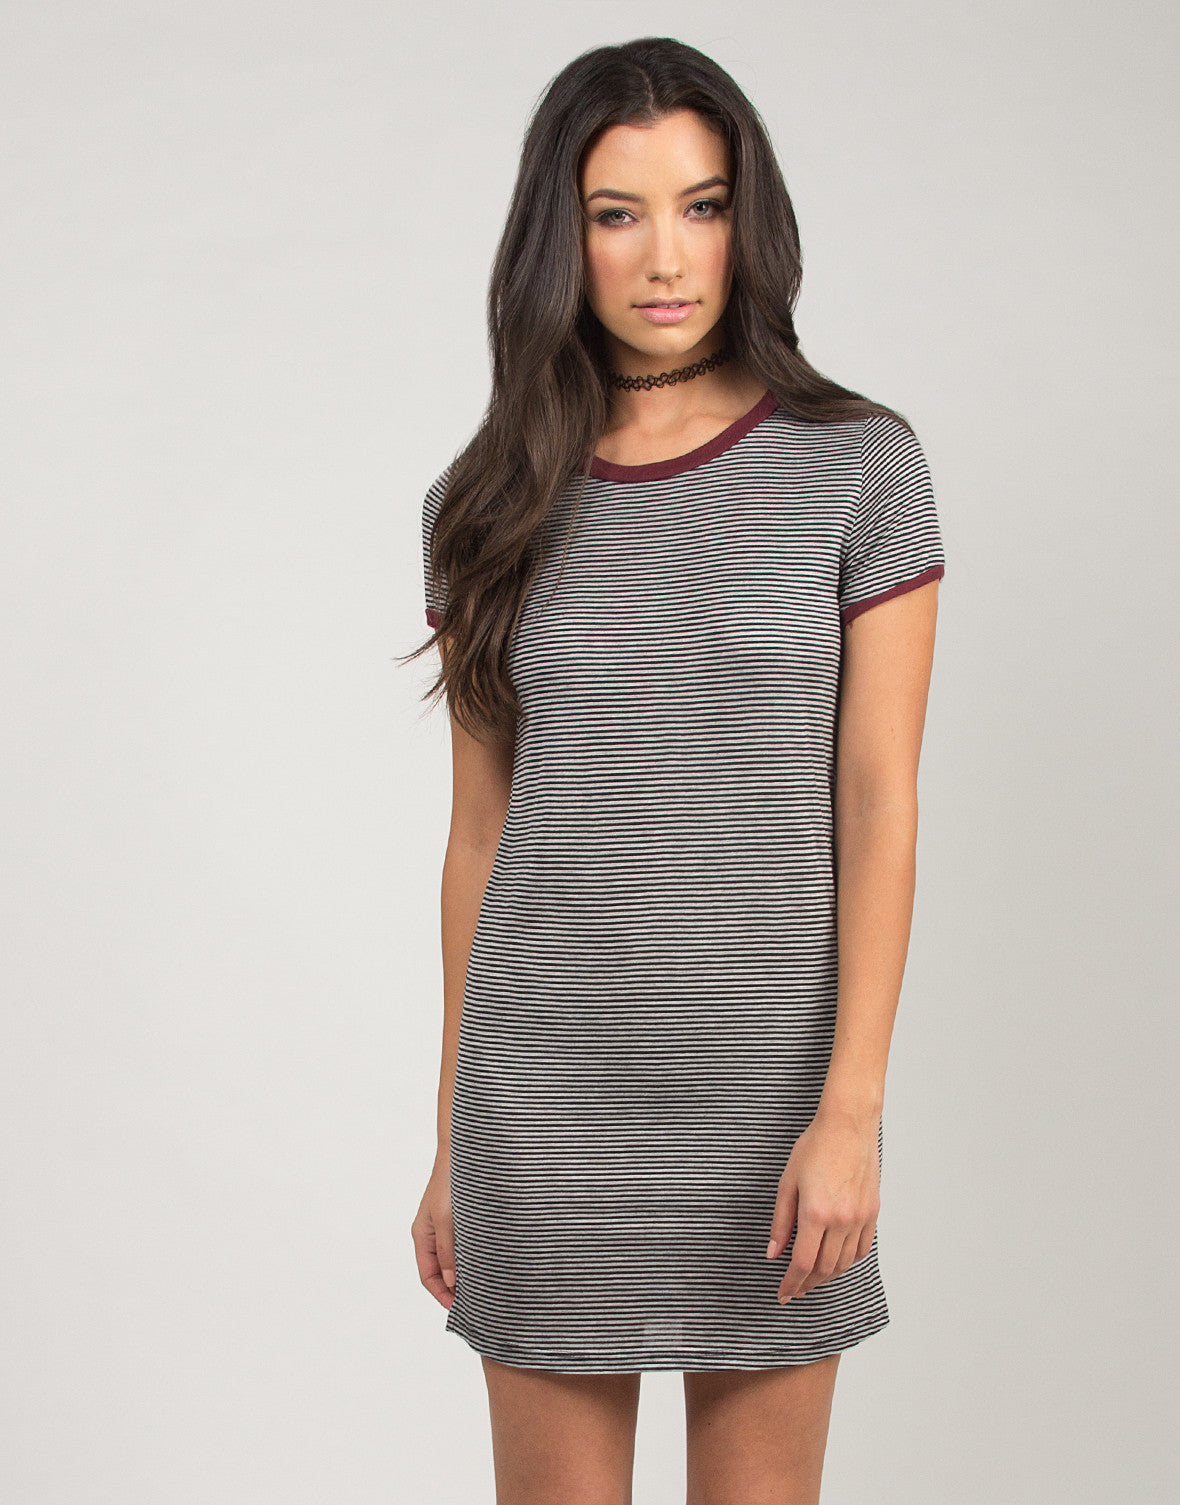 Contrast Trimmed Short Sleeve T-Shirt Dress